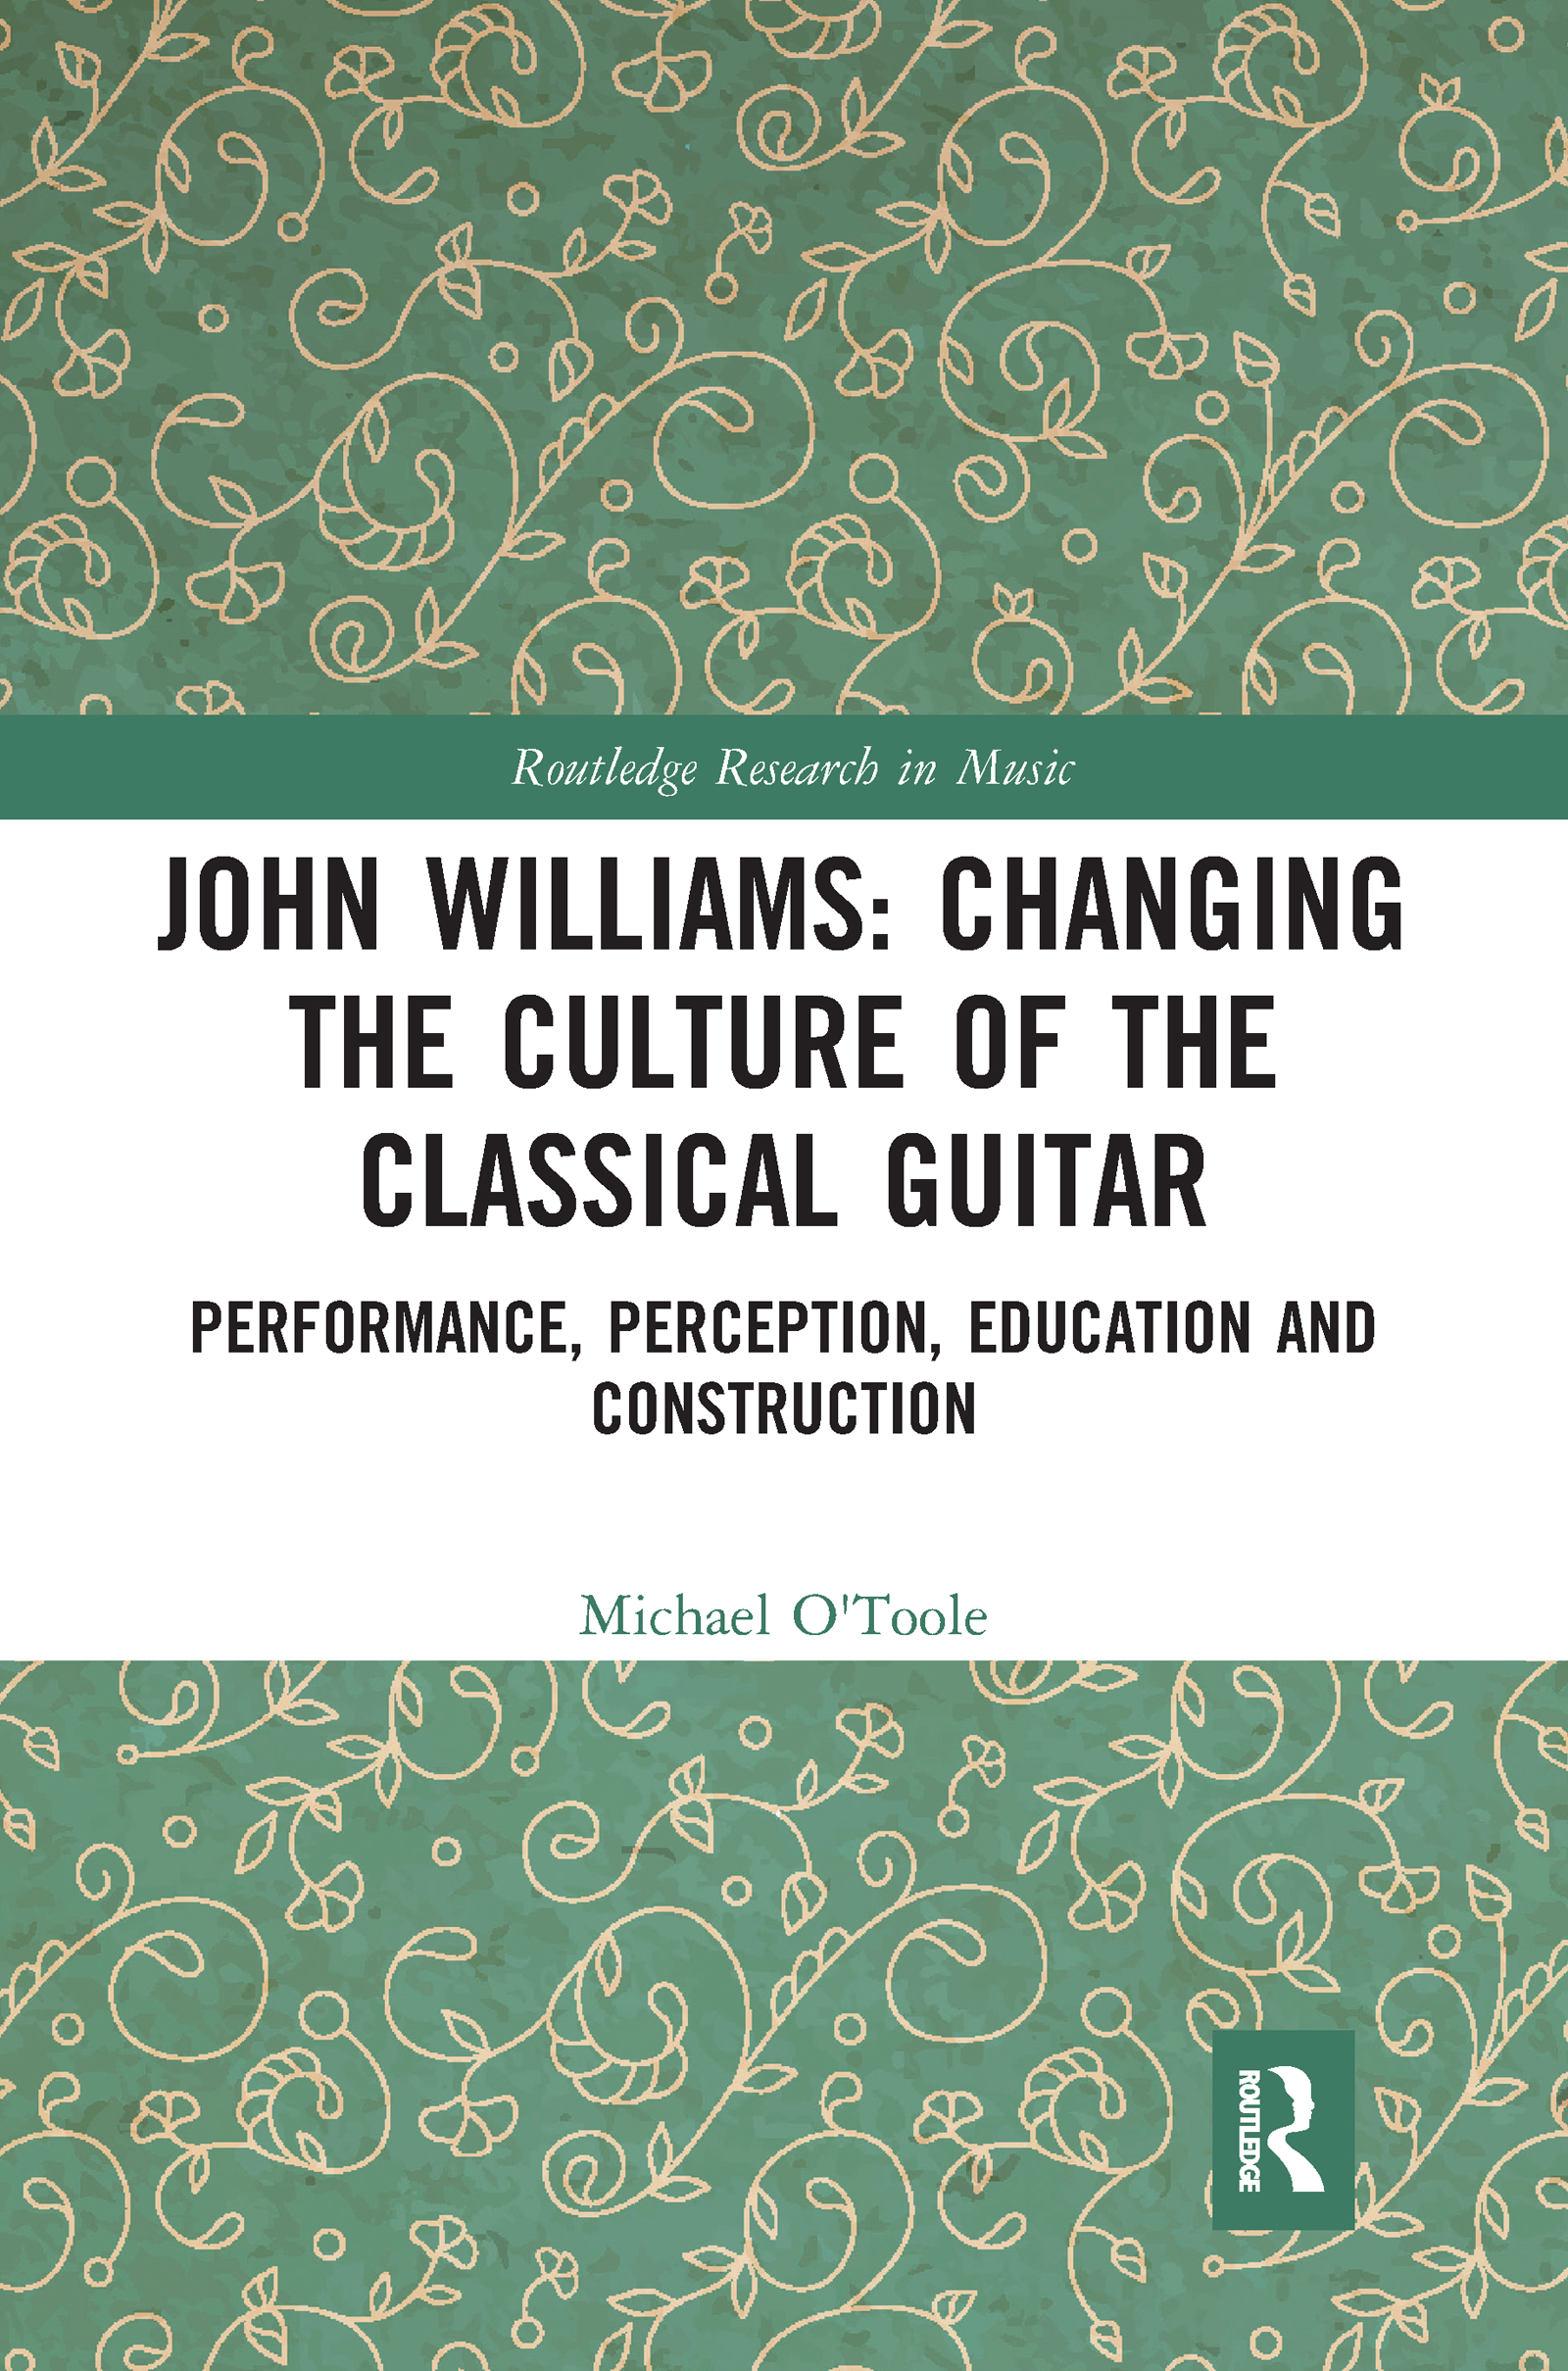 John Williams: Changing the Culture of the Classical Guitar